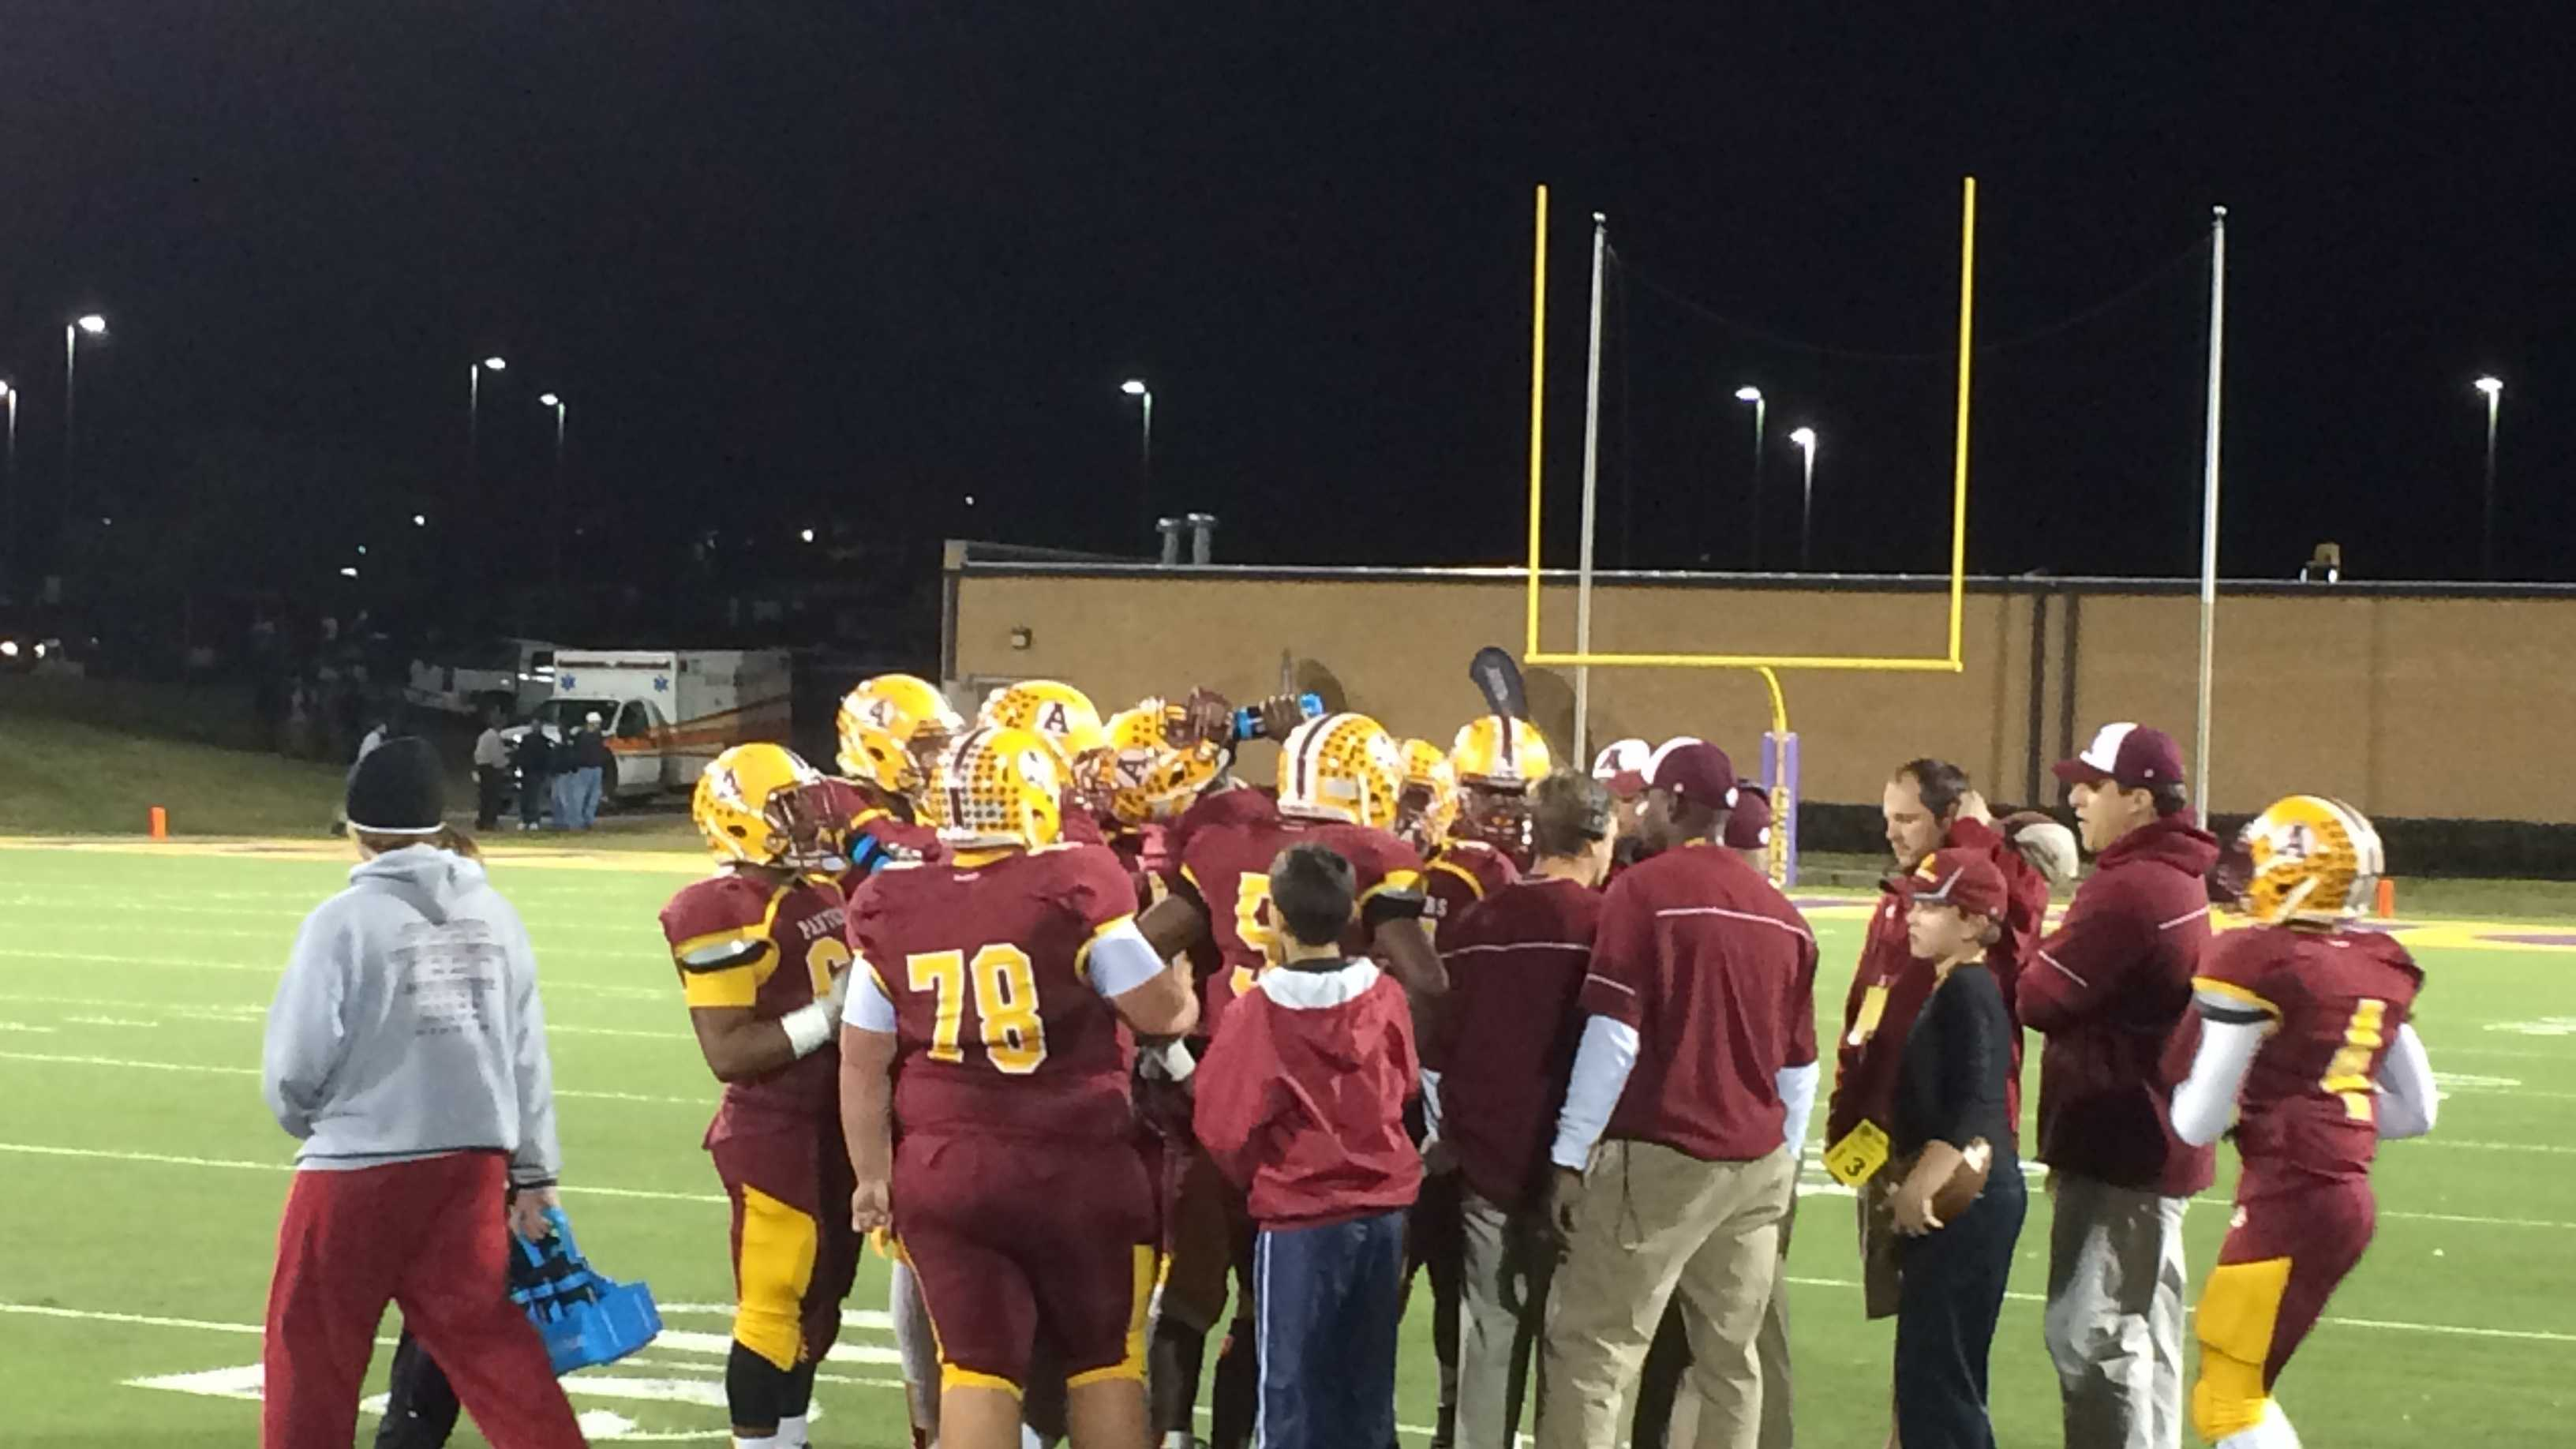 The Abbeville Panthers eye another football state championship.